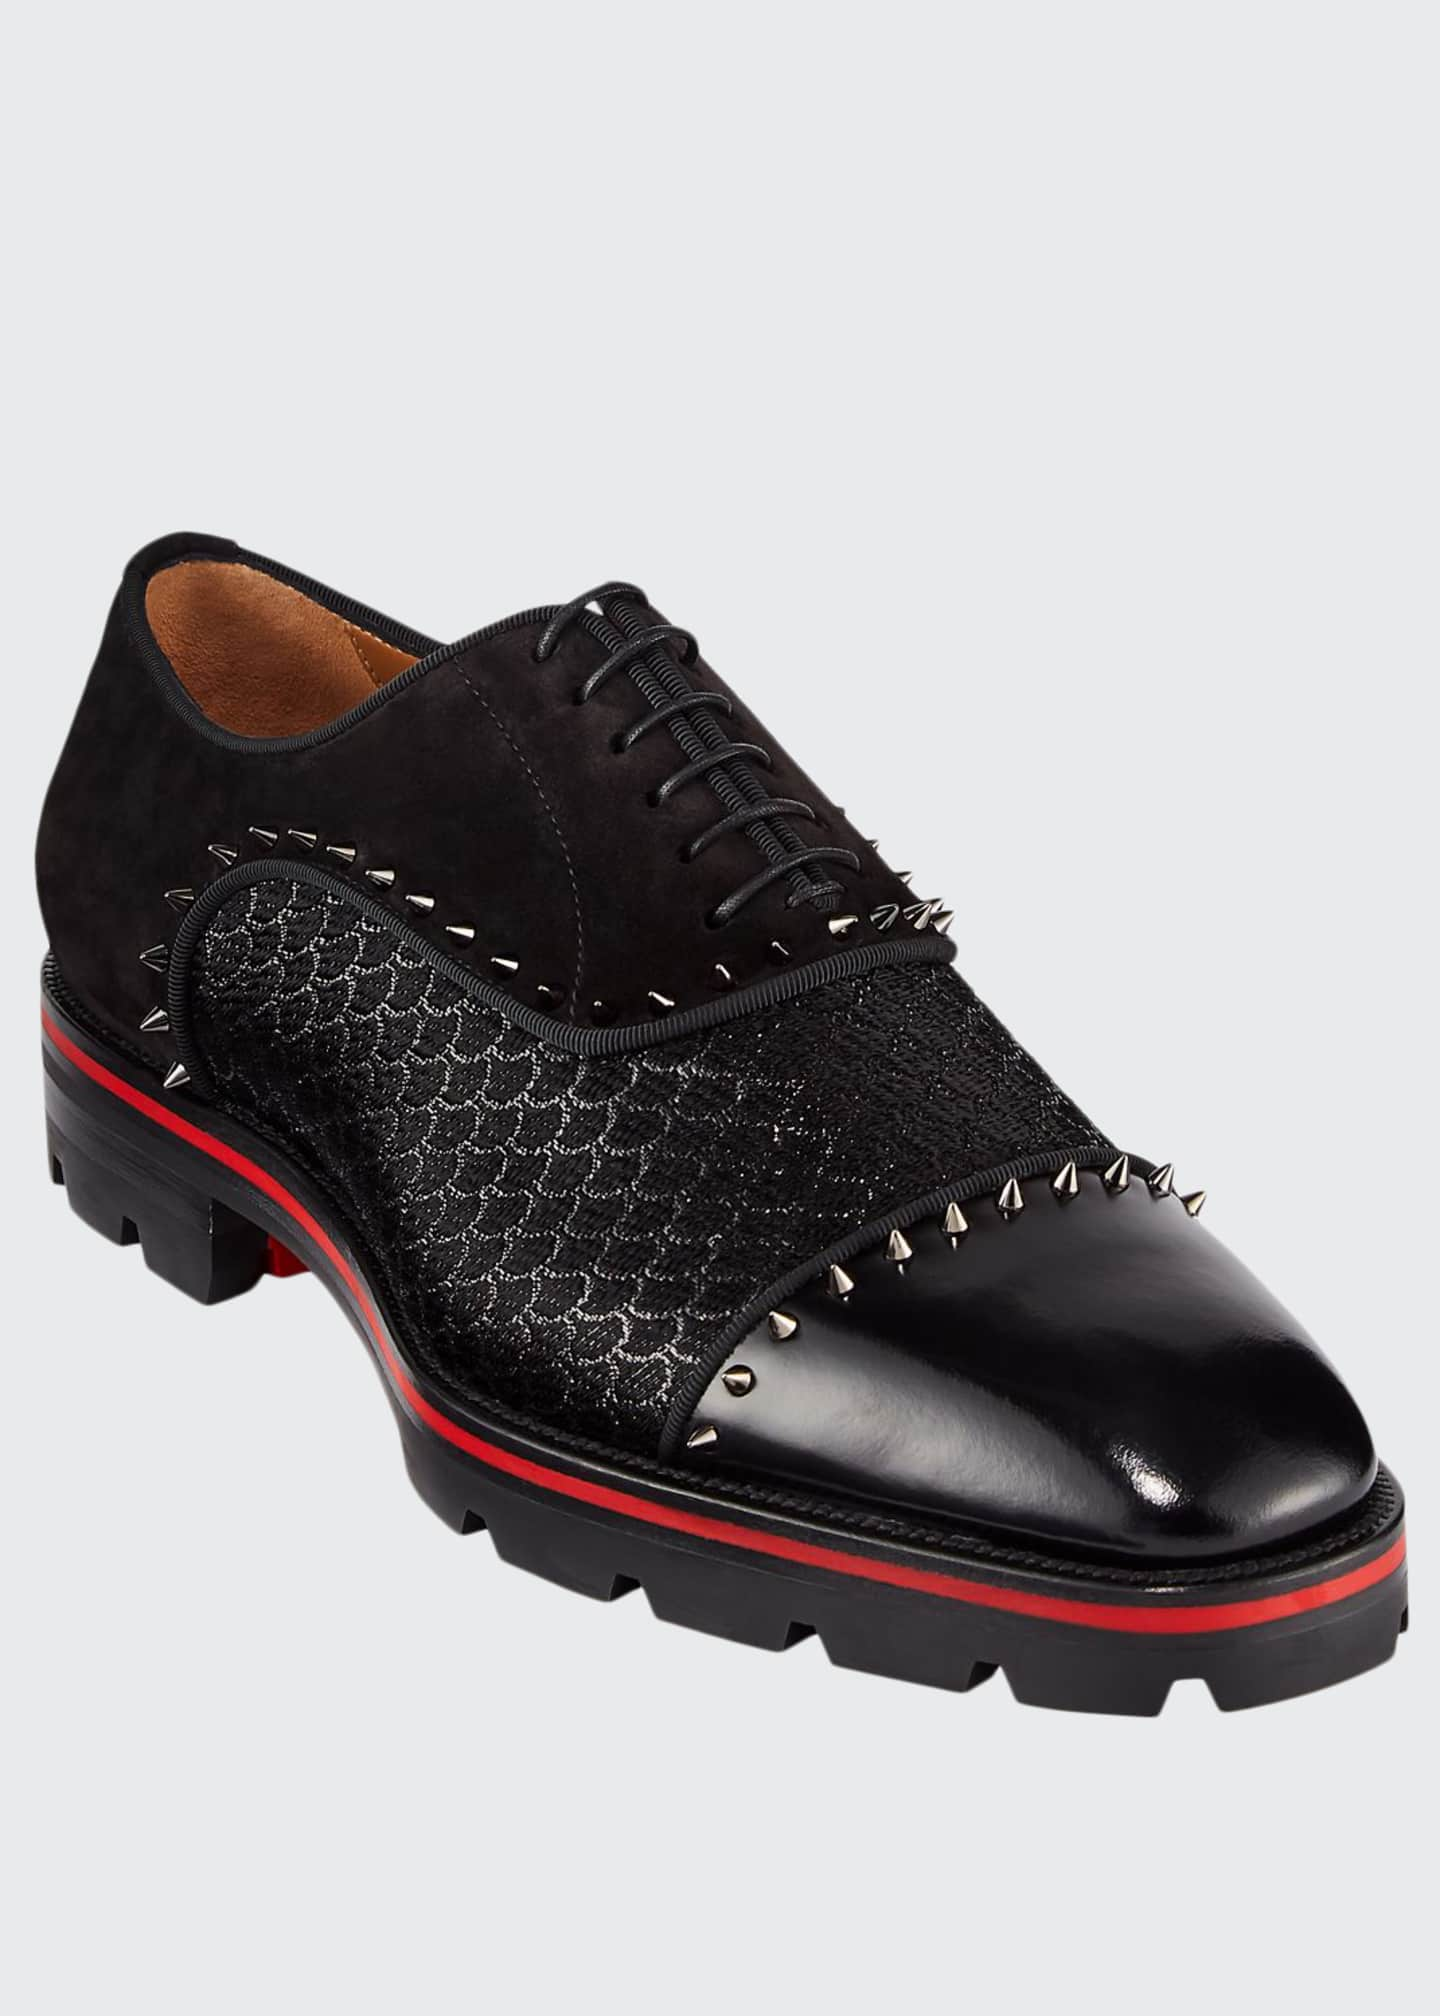 Christian Louboutin Men's Champignac Red-Sole Spiked Leather